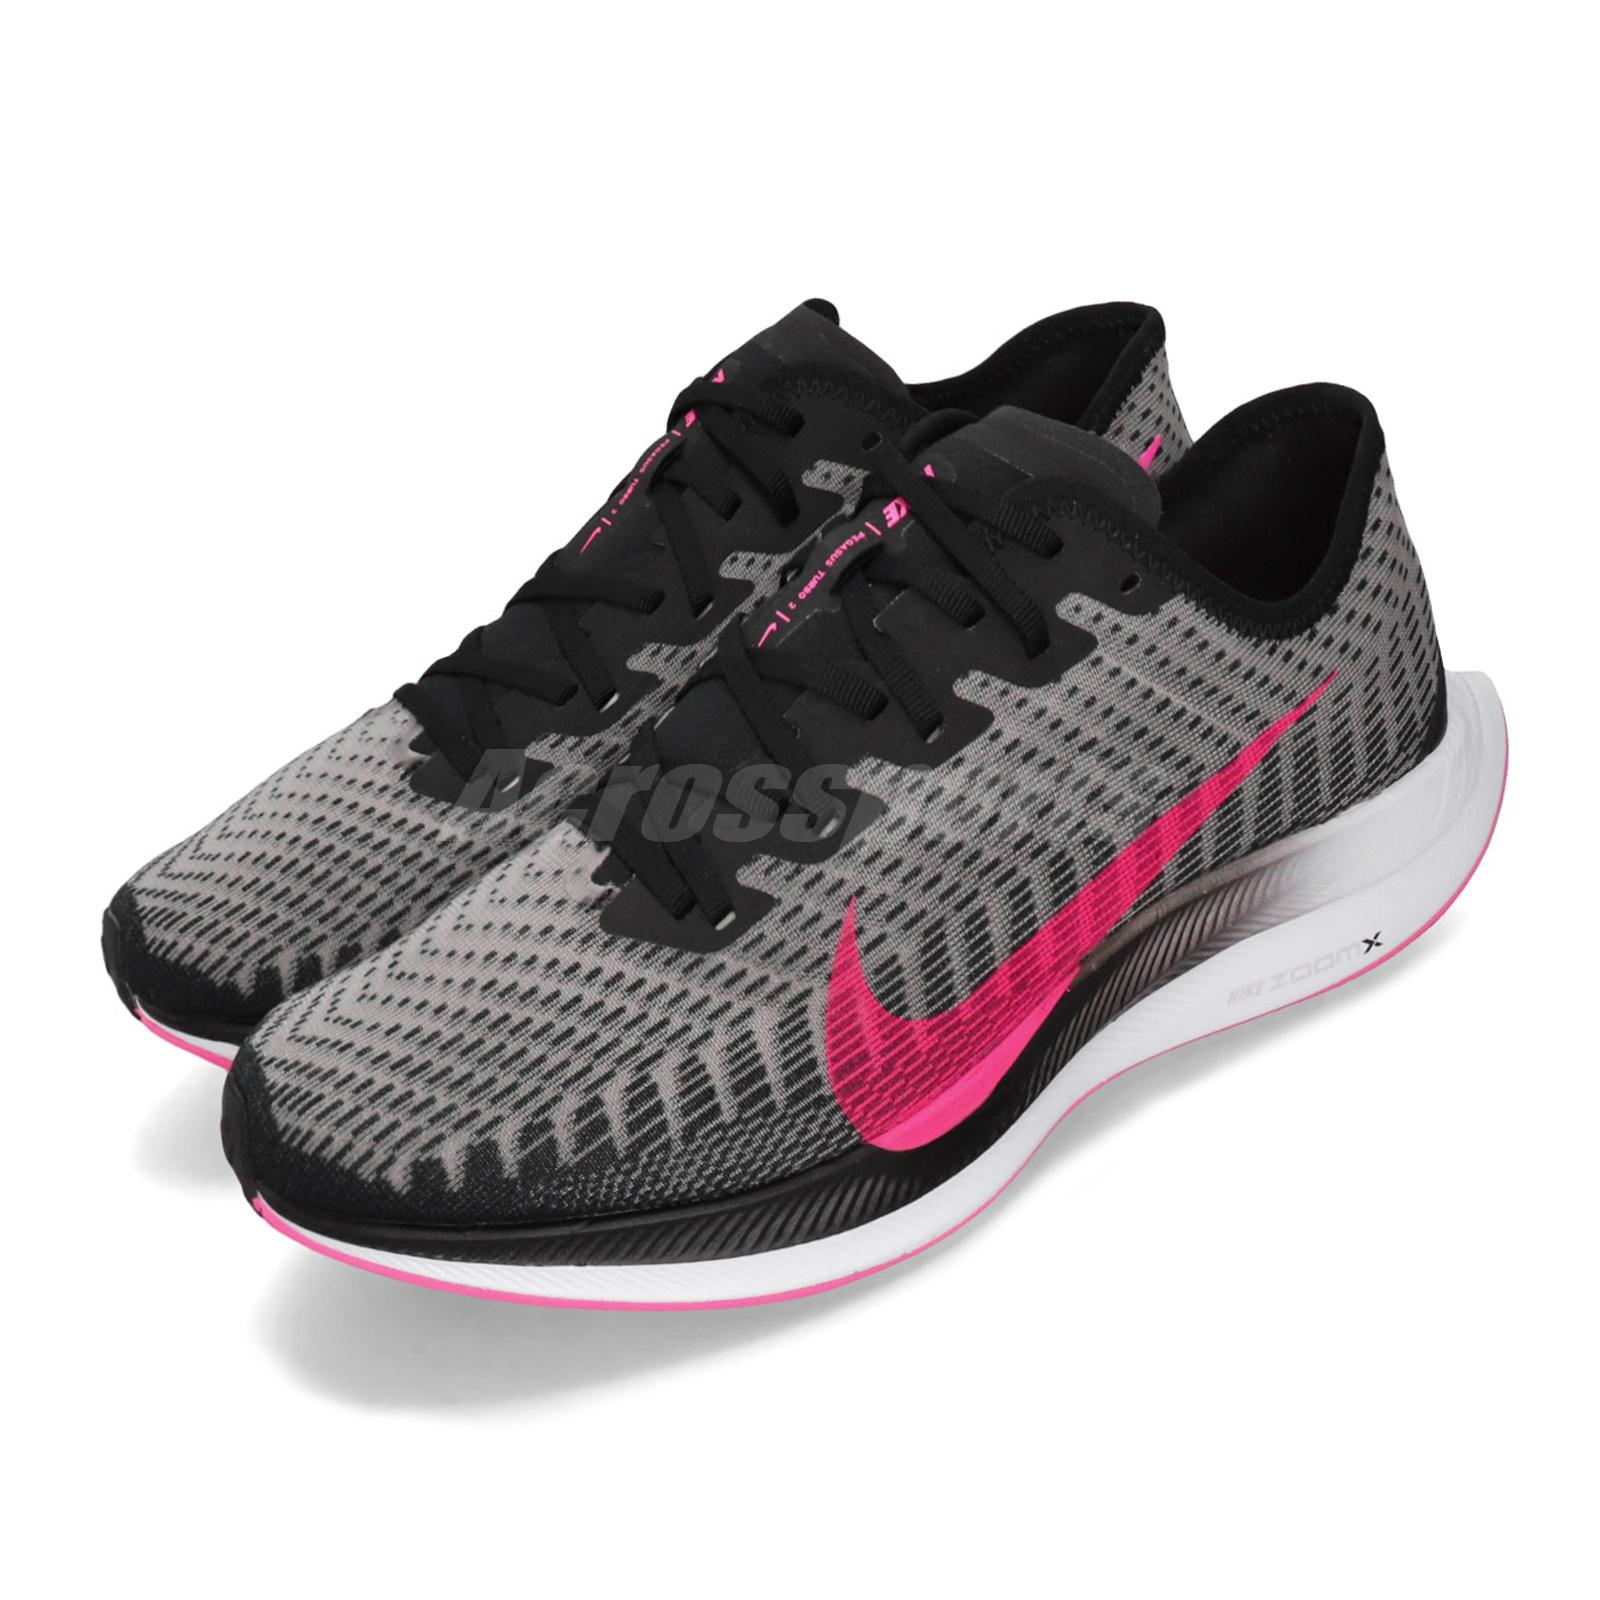 cheaper 556df 865e6 Details about Nike Zoom Pegasus Turbo 2 Black Pink Blast Mens Running Shoes  AT2863-007